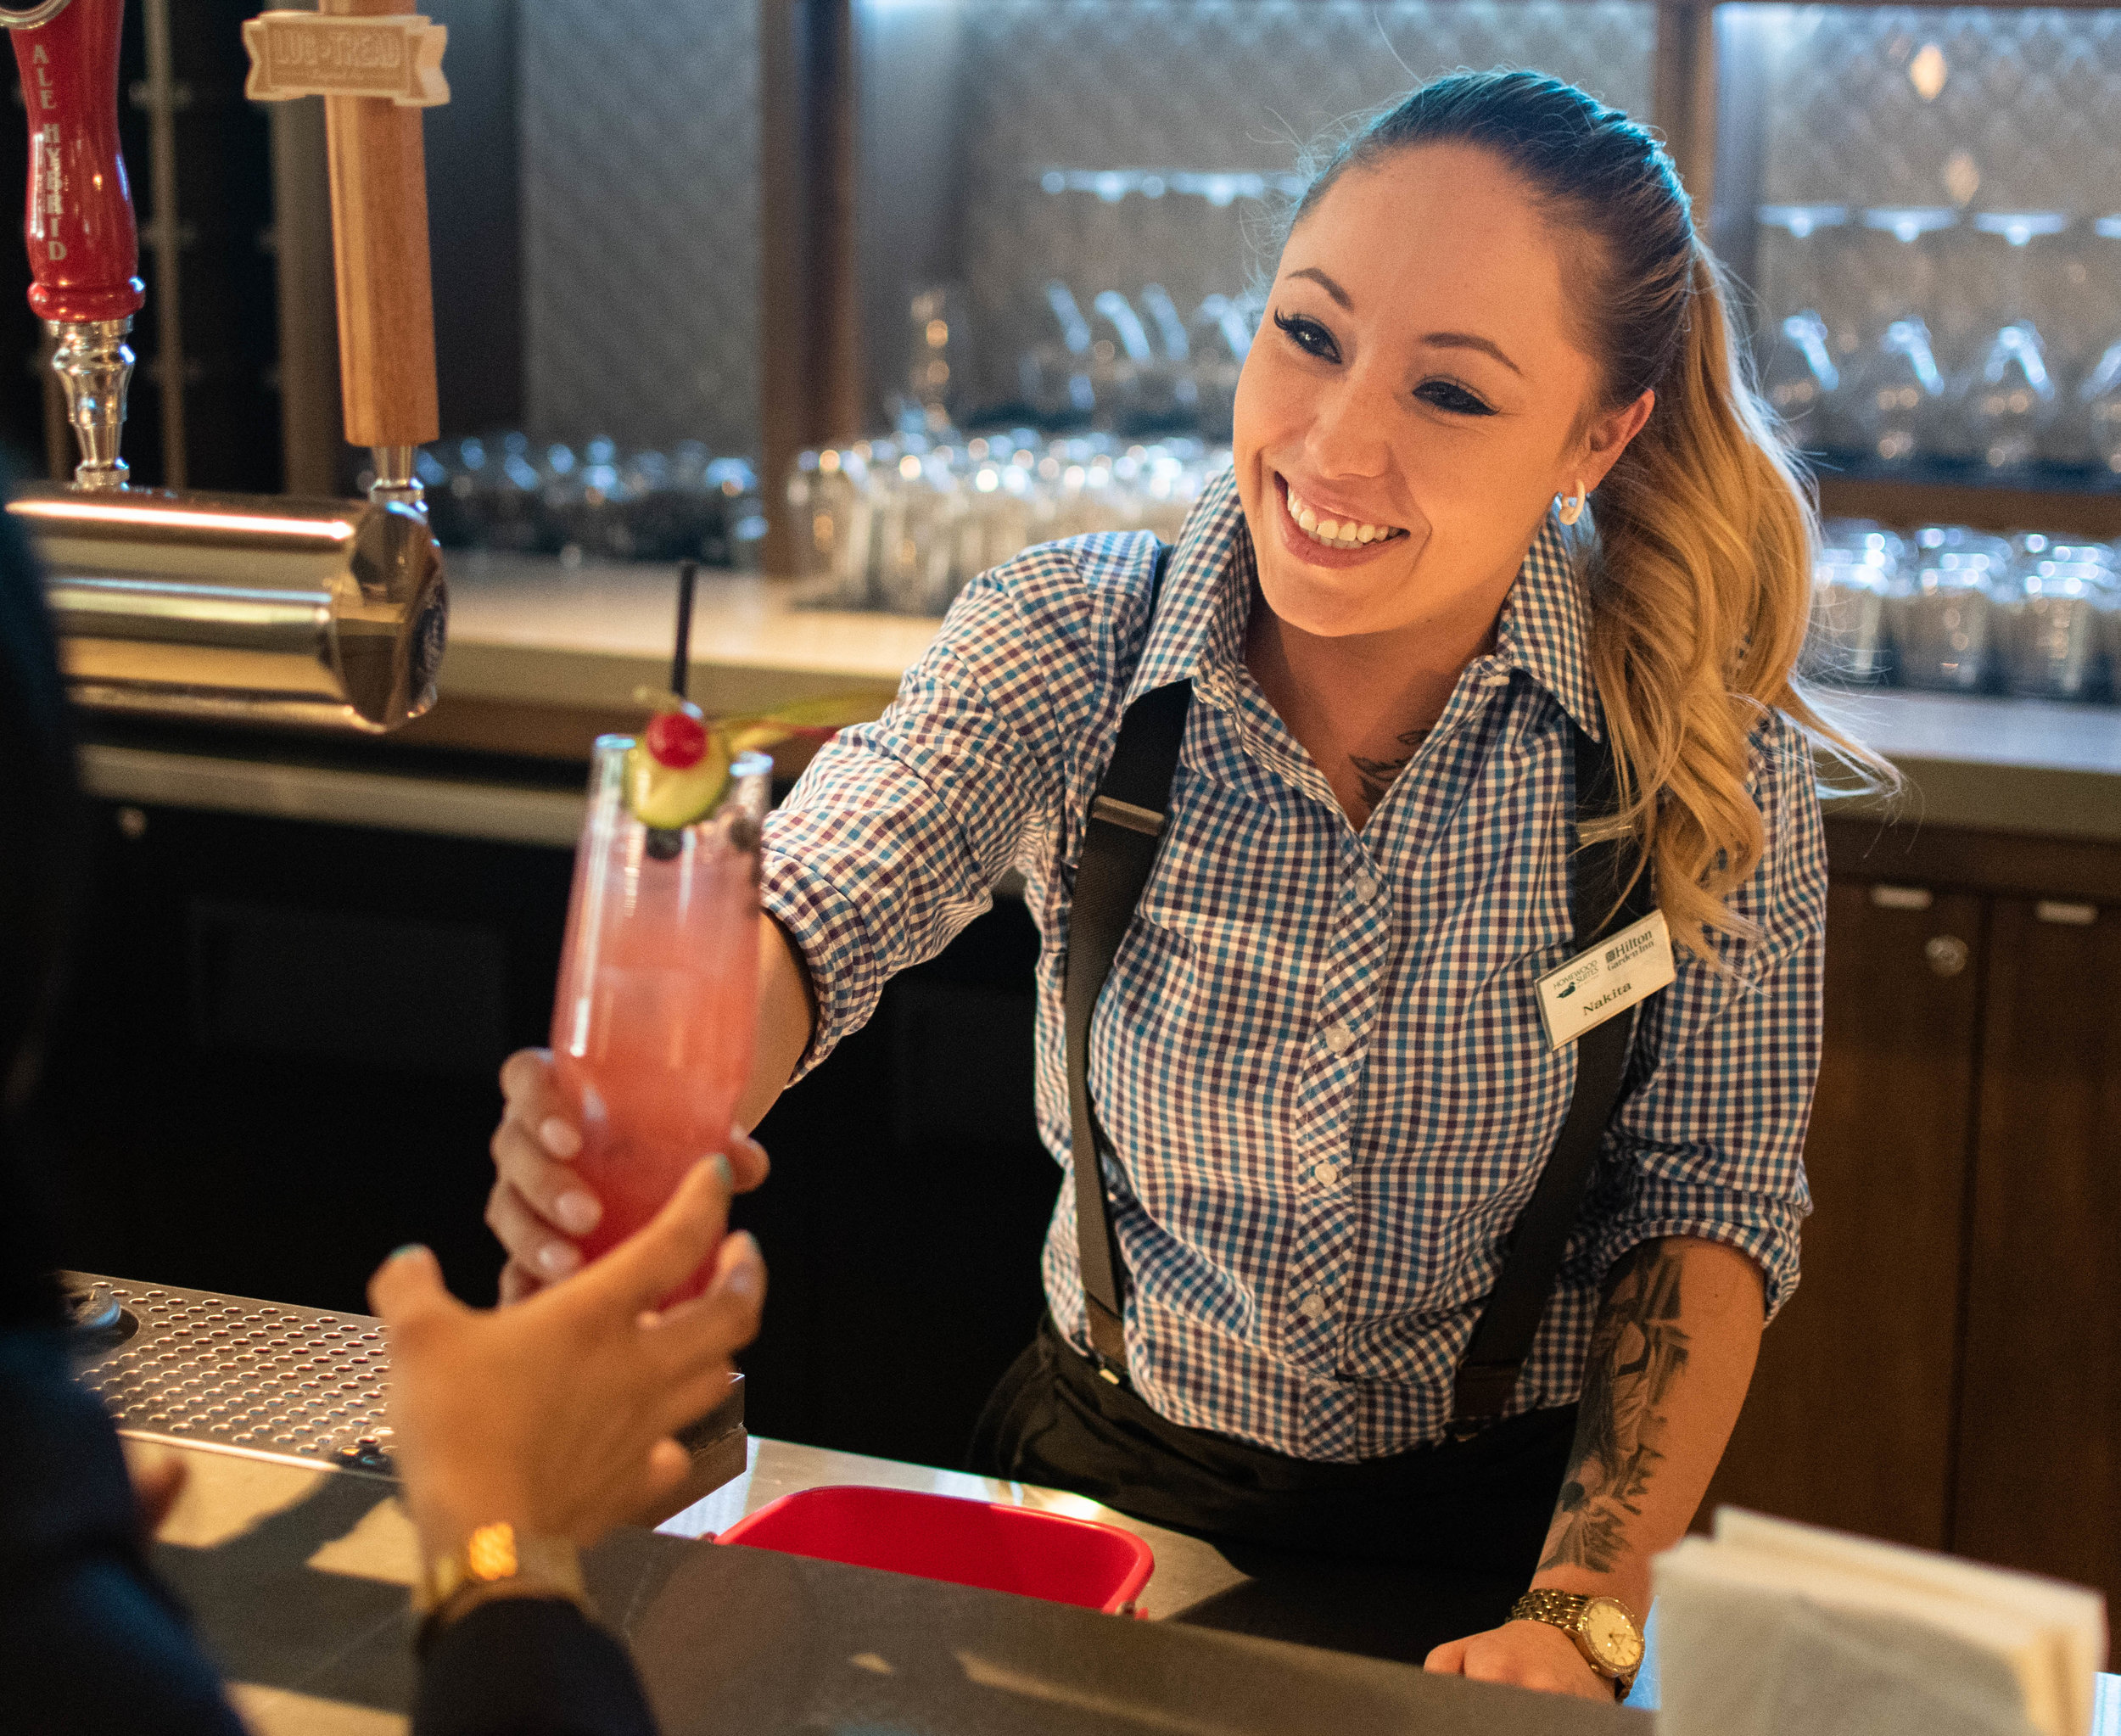 Women bartender smiling passing a drink to a customer